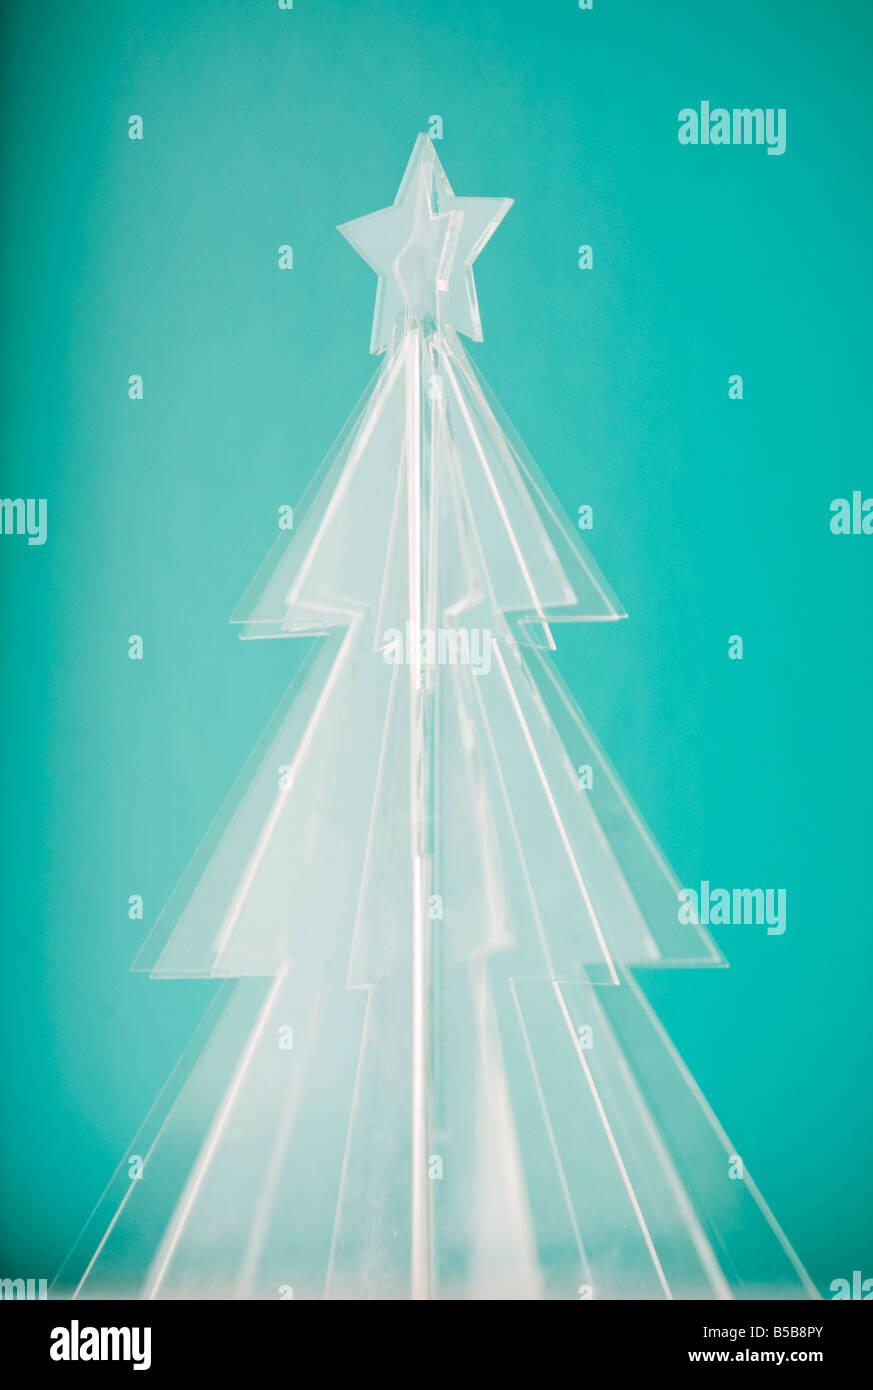 Glowing Icy Christmas Tree On Tiffany Blue Background Stock Photo Alamy